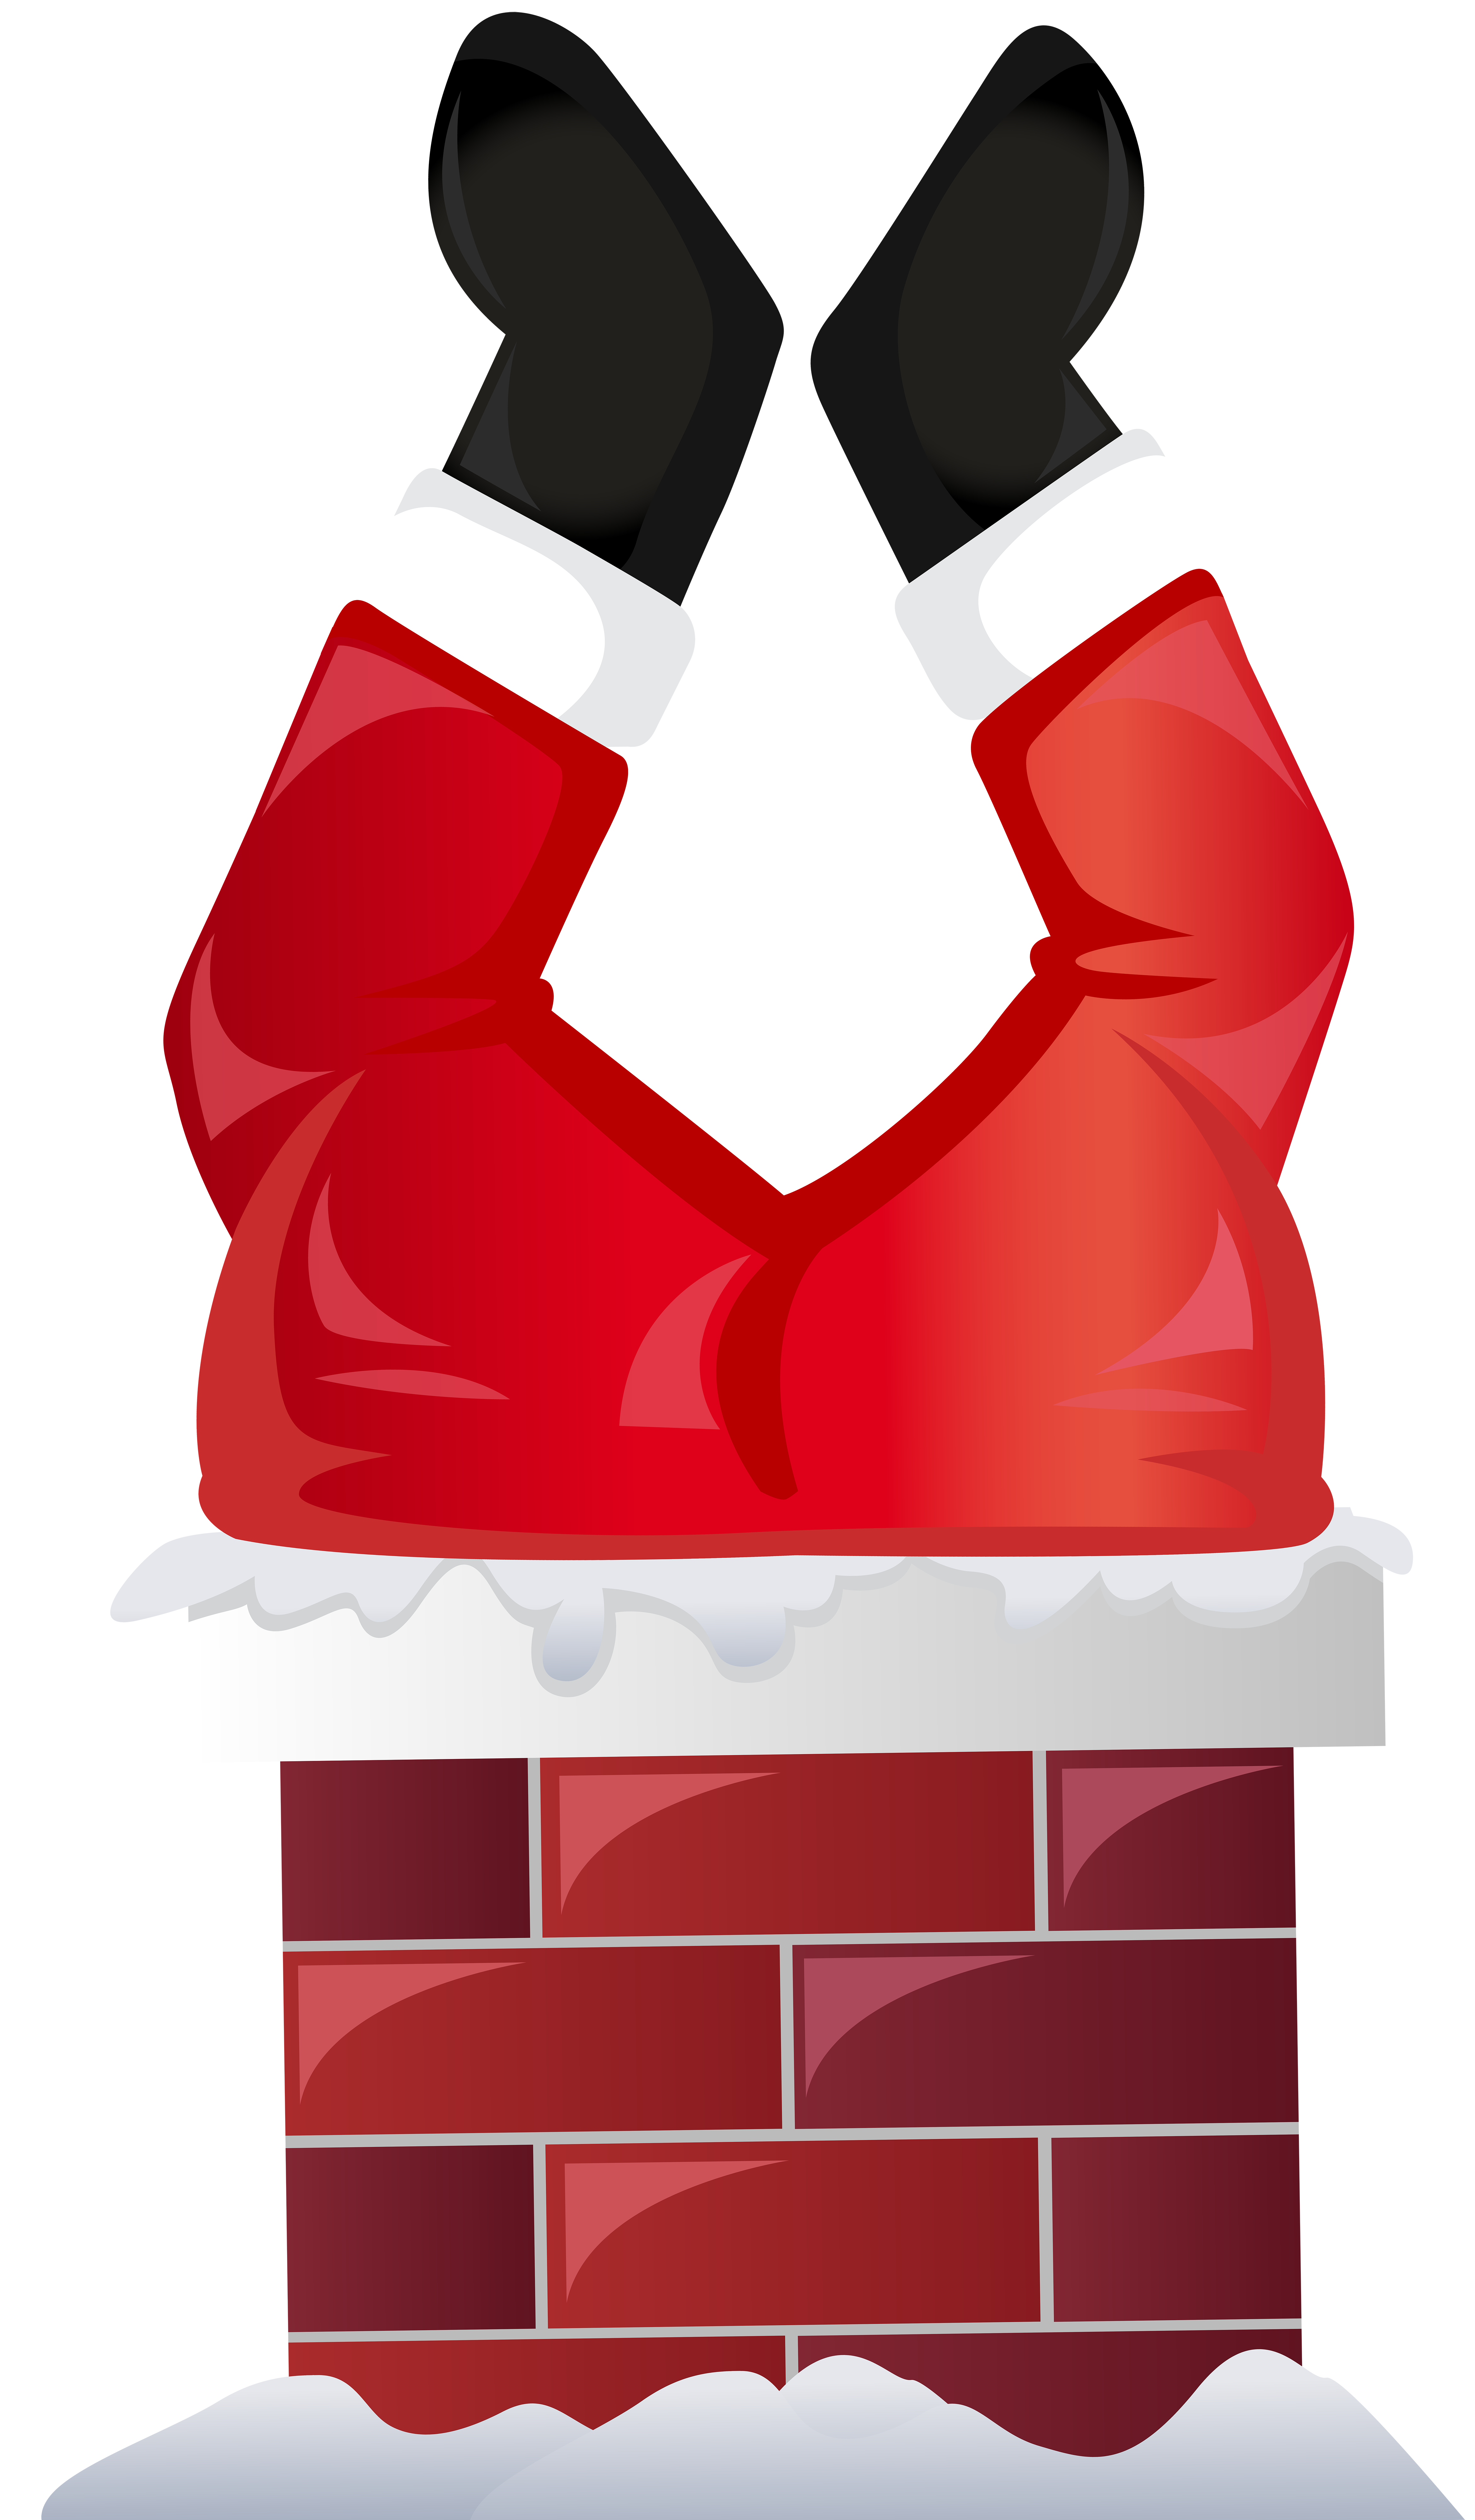 Chimney clipart. Funny santa in transparent